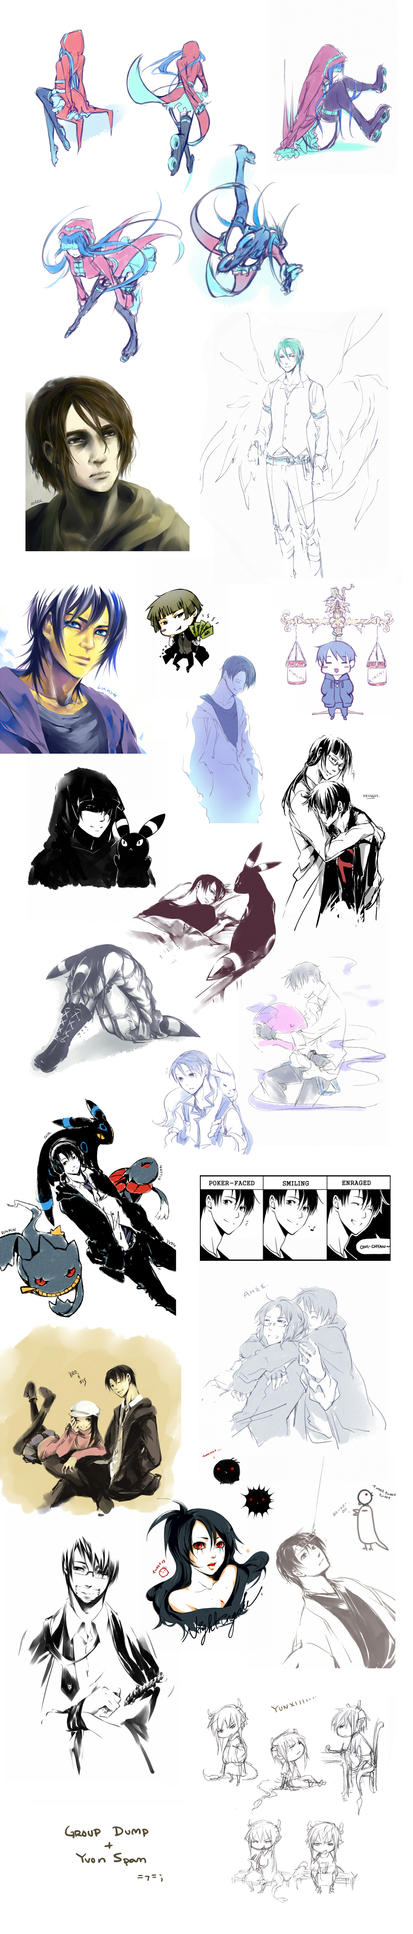 Da group fun by nux on deviantart Compilation c